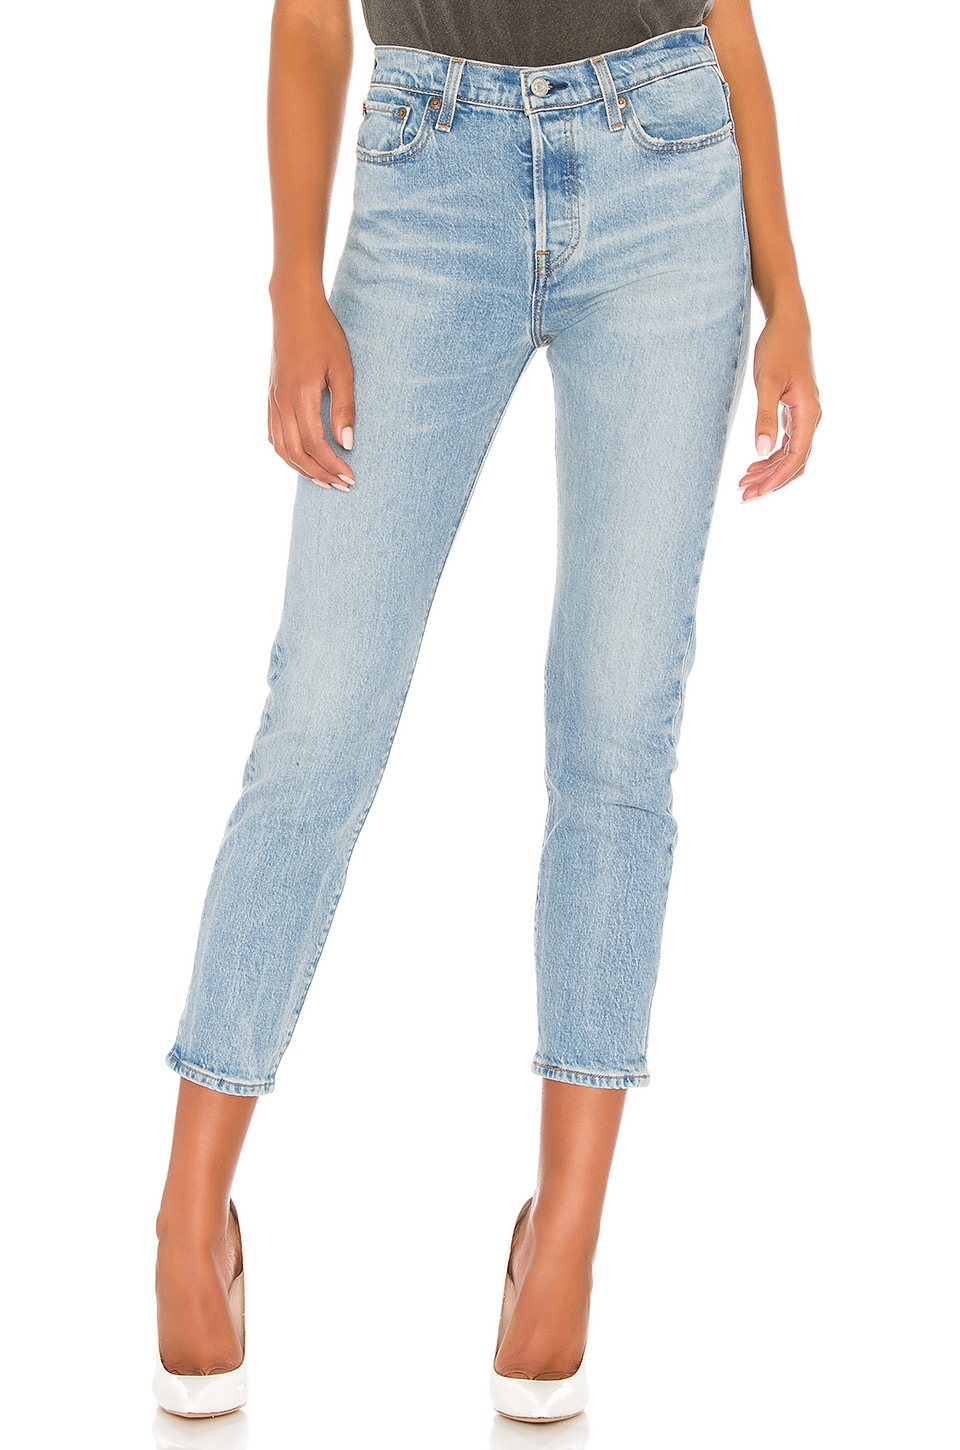 LEVI'S JEAN JAMBES FUSELÉES WEDGIE ICON